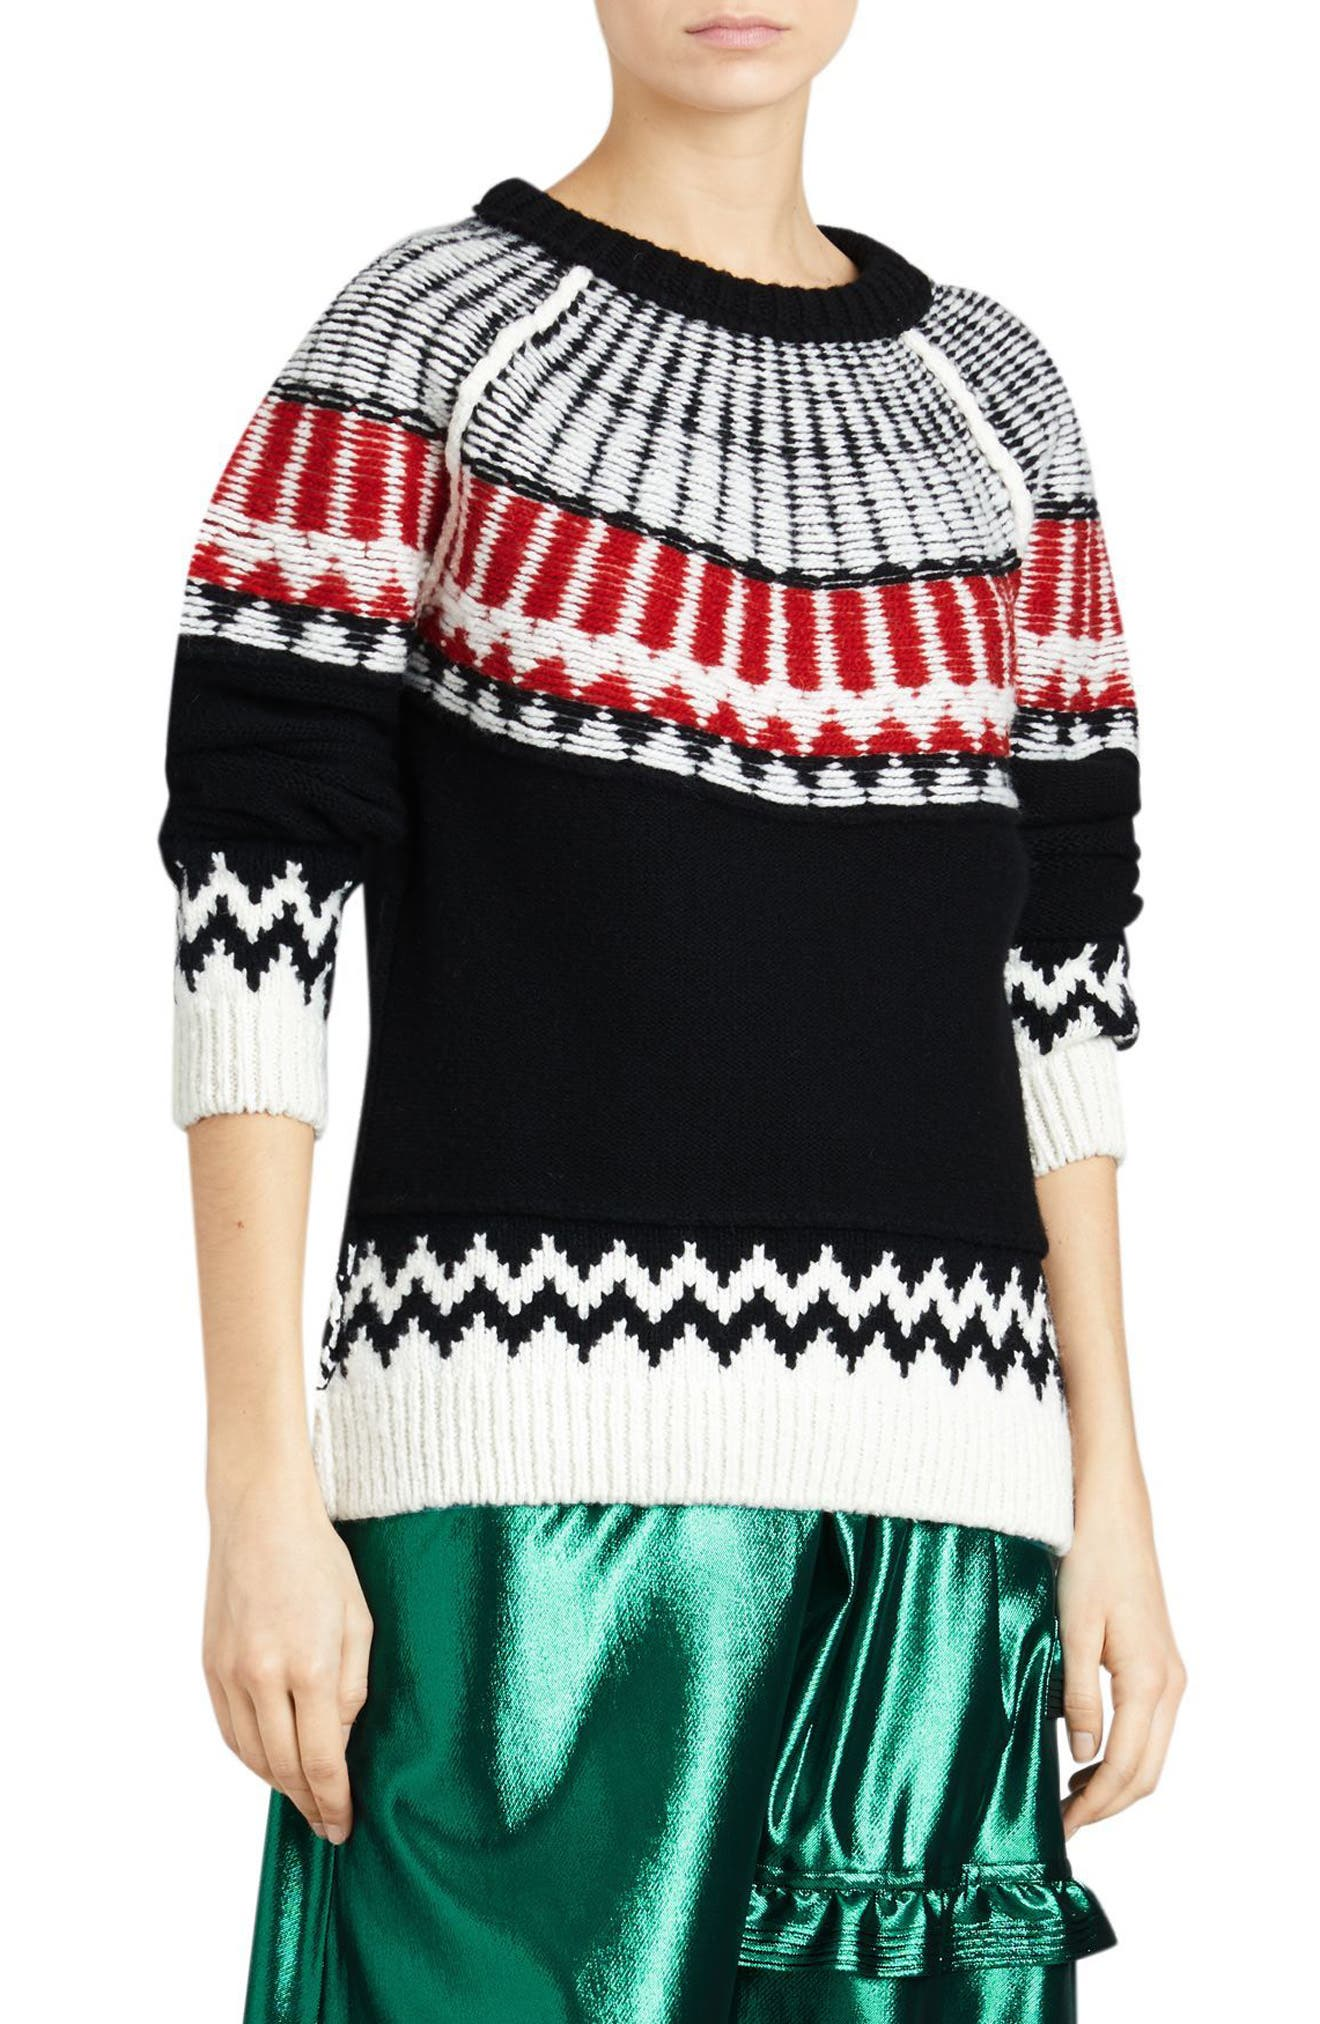 Trycroft Fair Isle Wool Blend Sweater,                         Main,                         color, Black/ Military Red